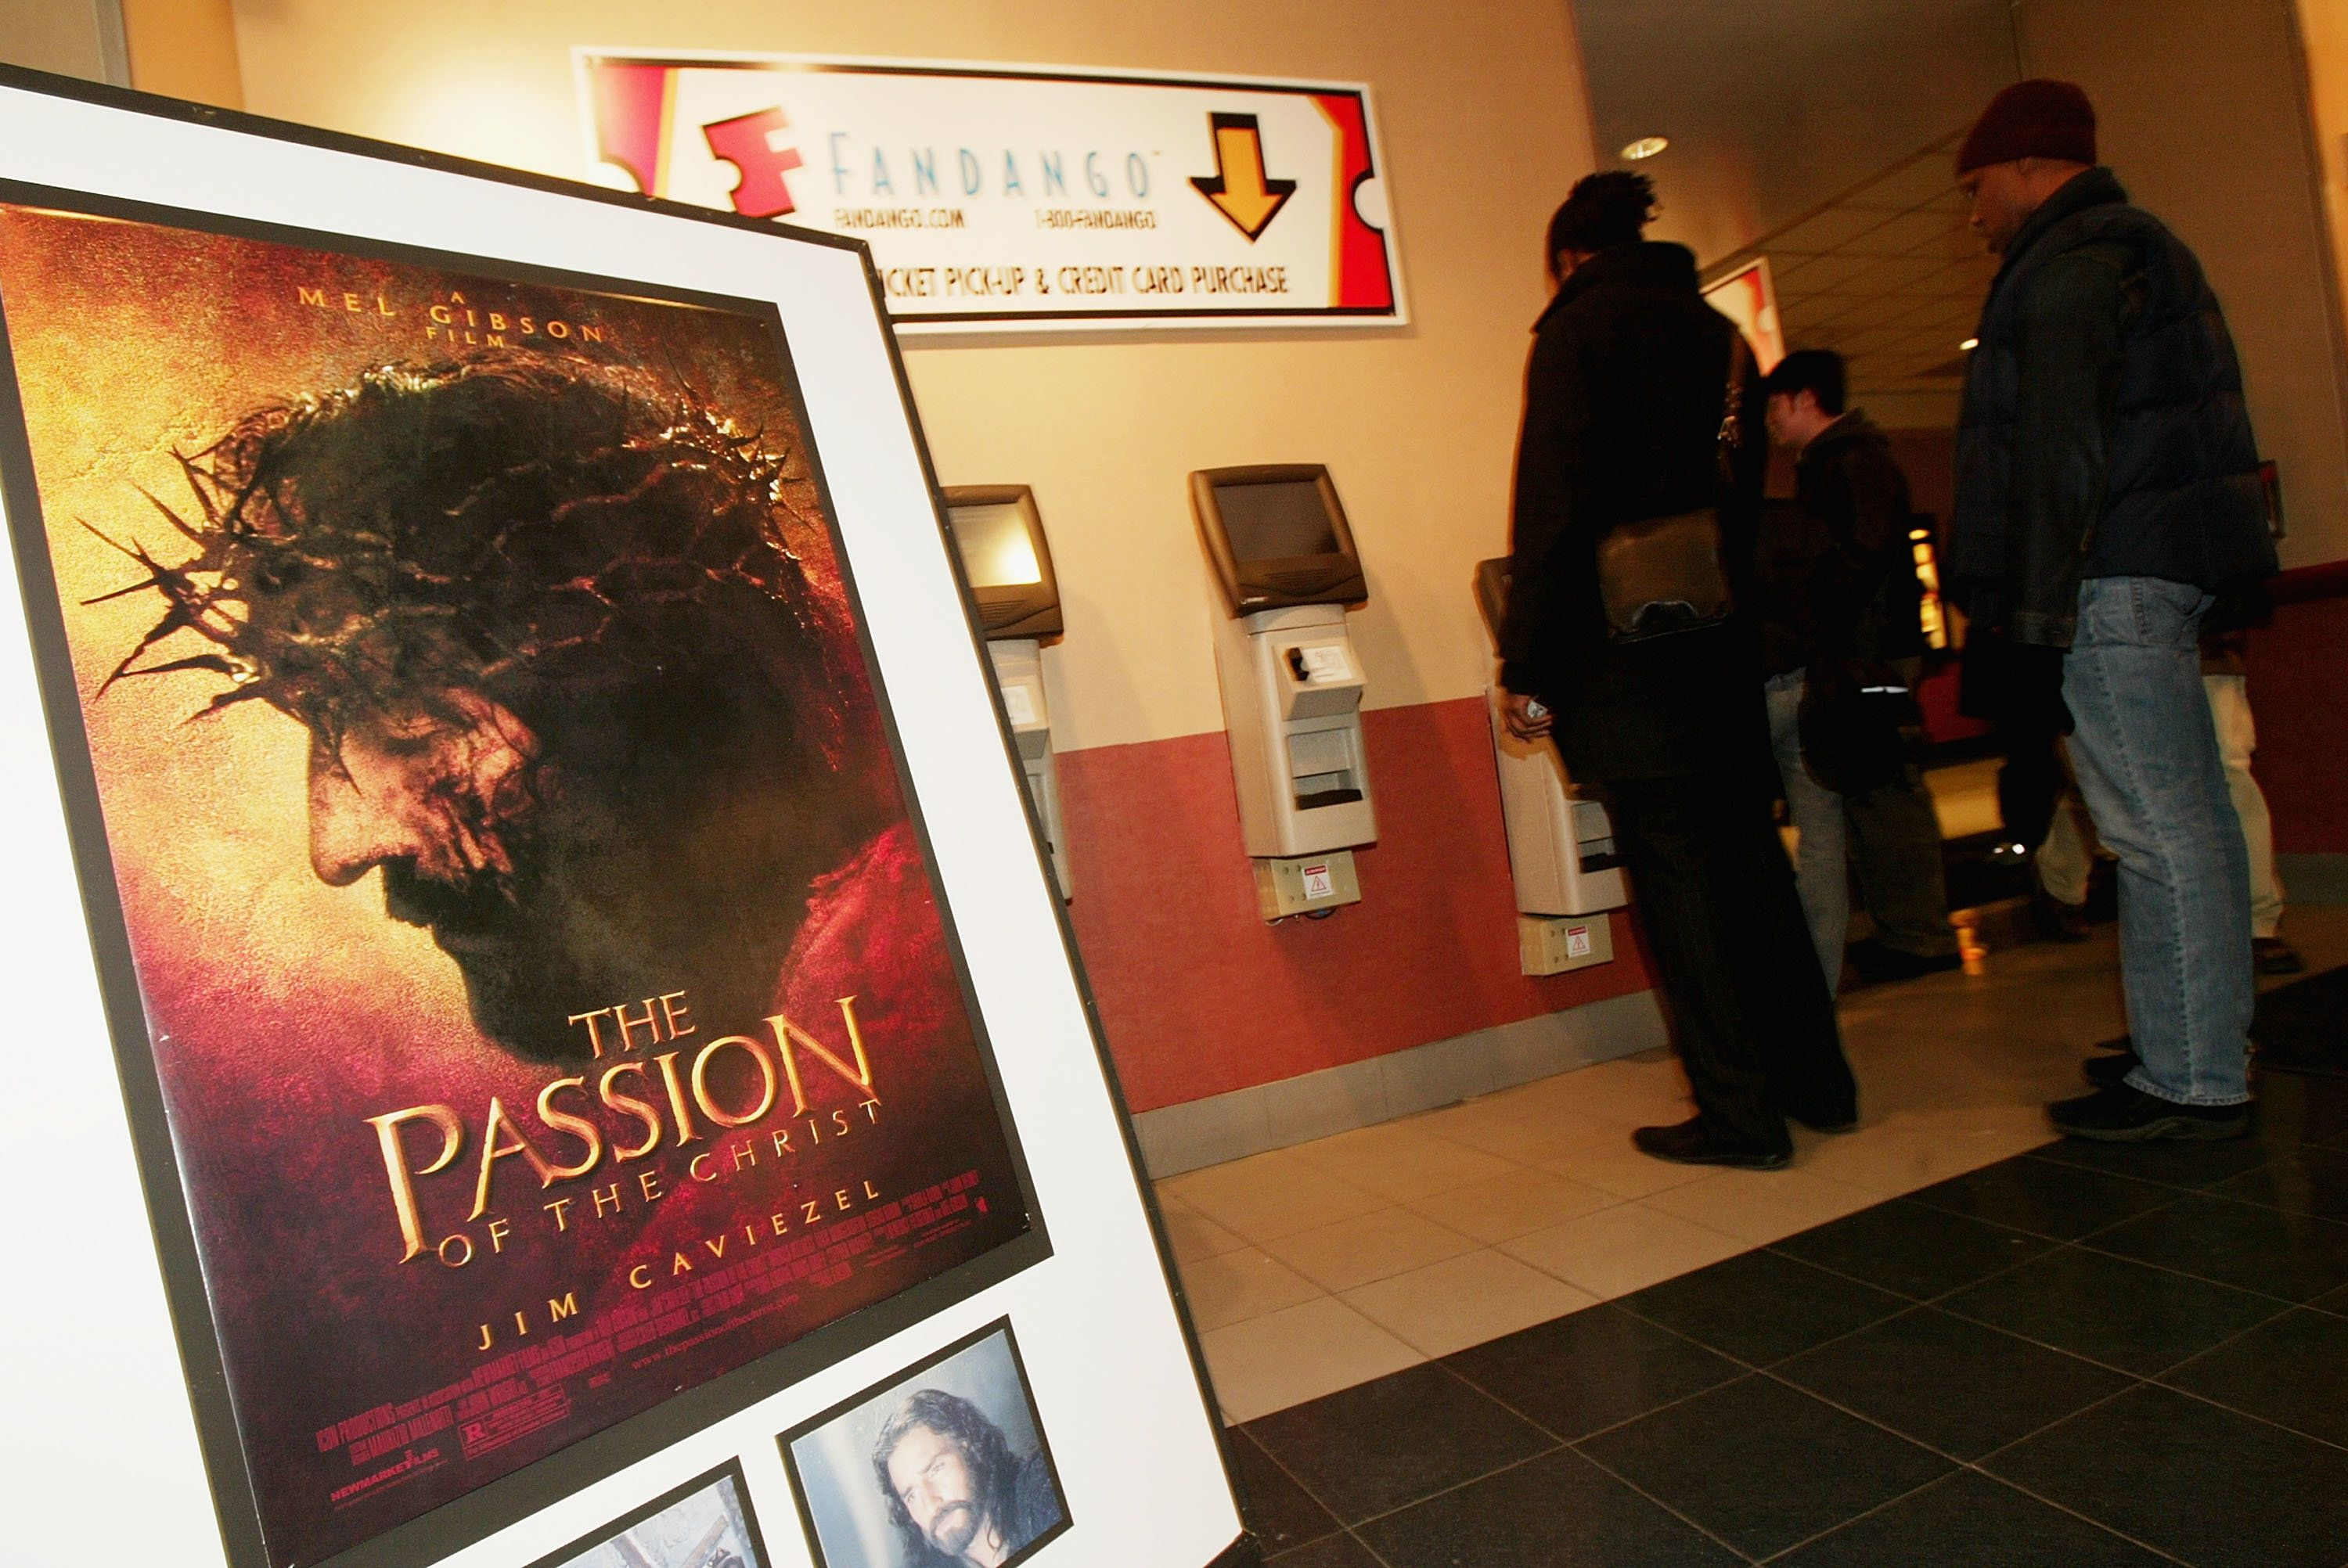 Mel Gibson's 'The Passion of the Christ' opens at the Regal Cinemas 14 February 24, 2004 in New York